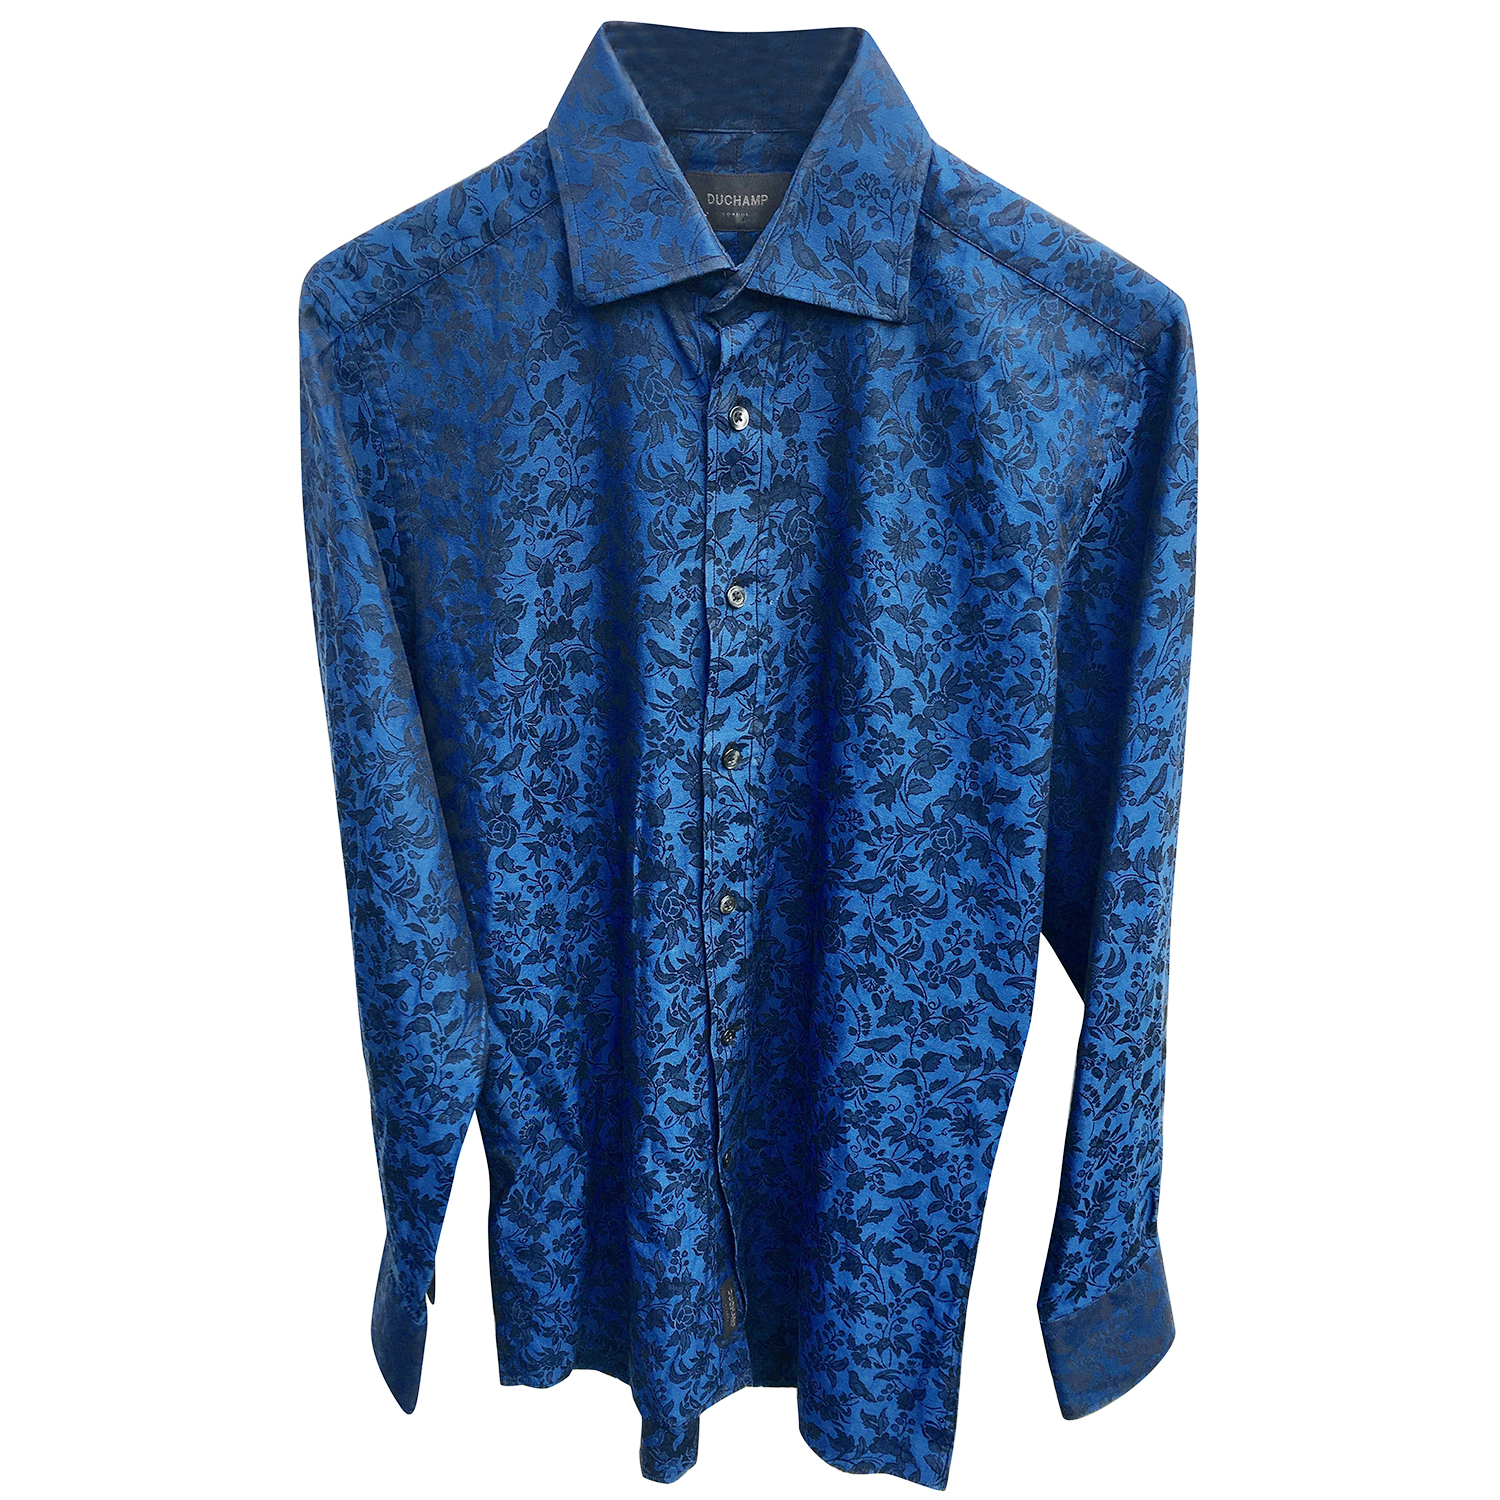 Duchamp Blue Floral Pirnt Shirt